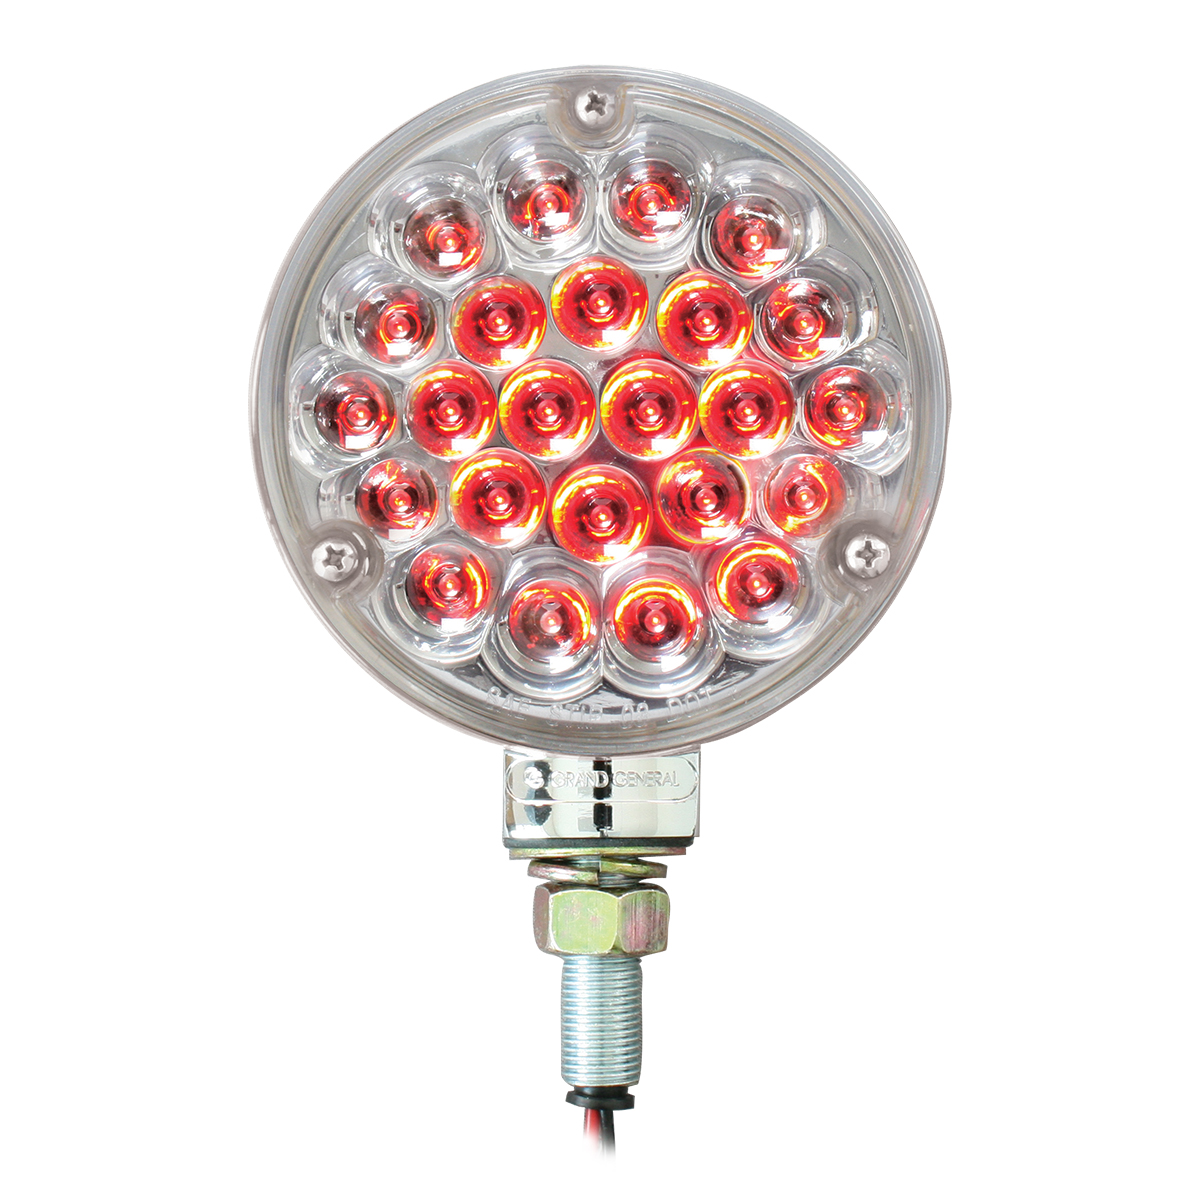 "78356 4"" Single Face Pearl LED Pedestal Light in Red/Clear"